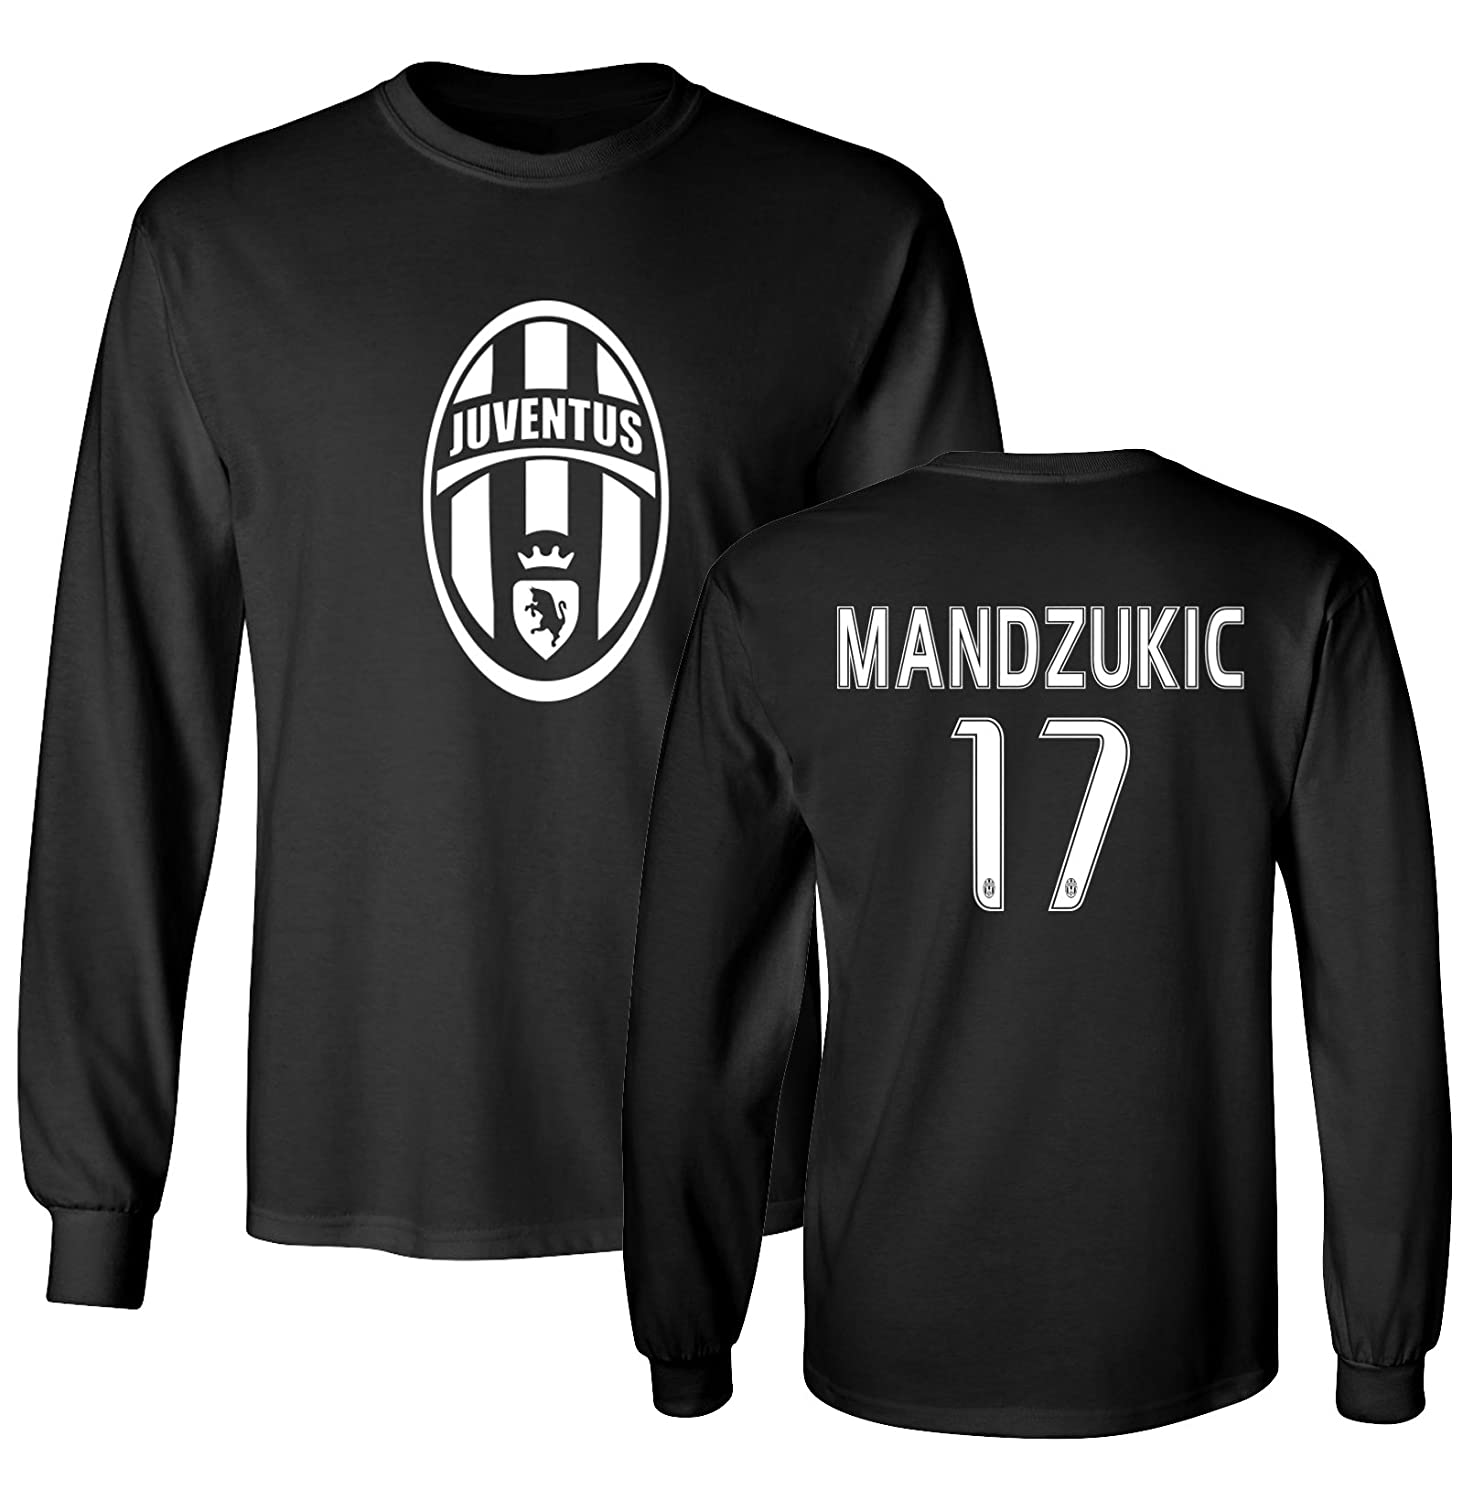 buy popular 4b977 00cd4 Tcamp Juventus Shirt Mario Mandzukic #17 Jersey Men's Long ...